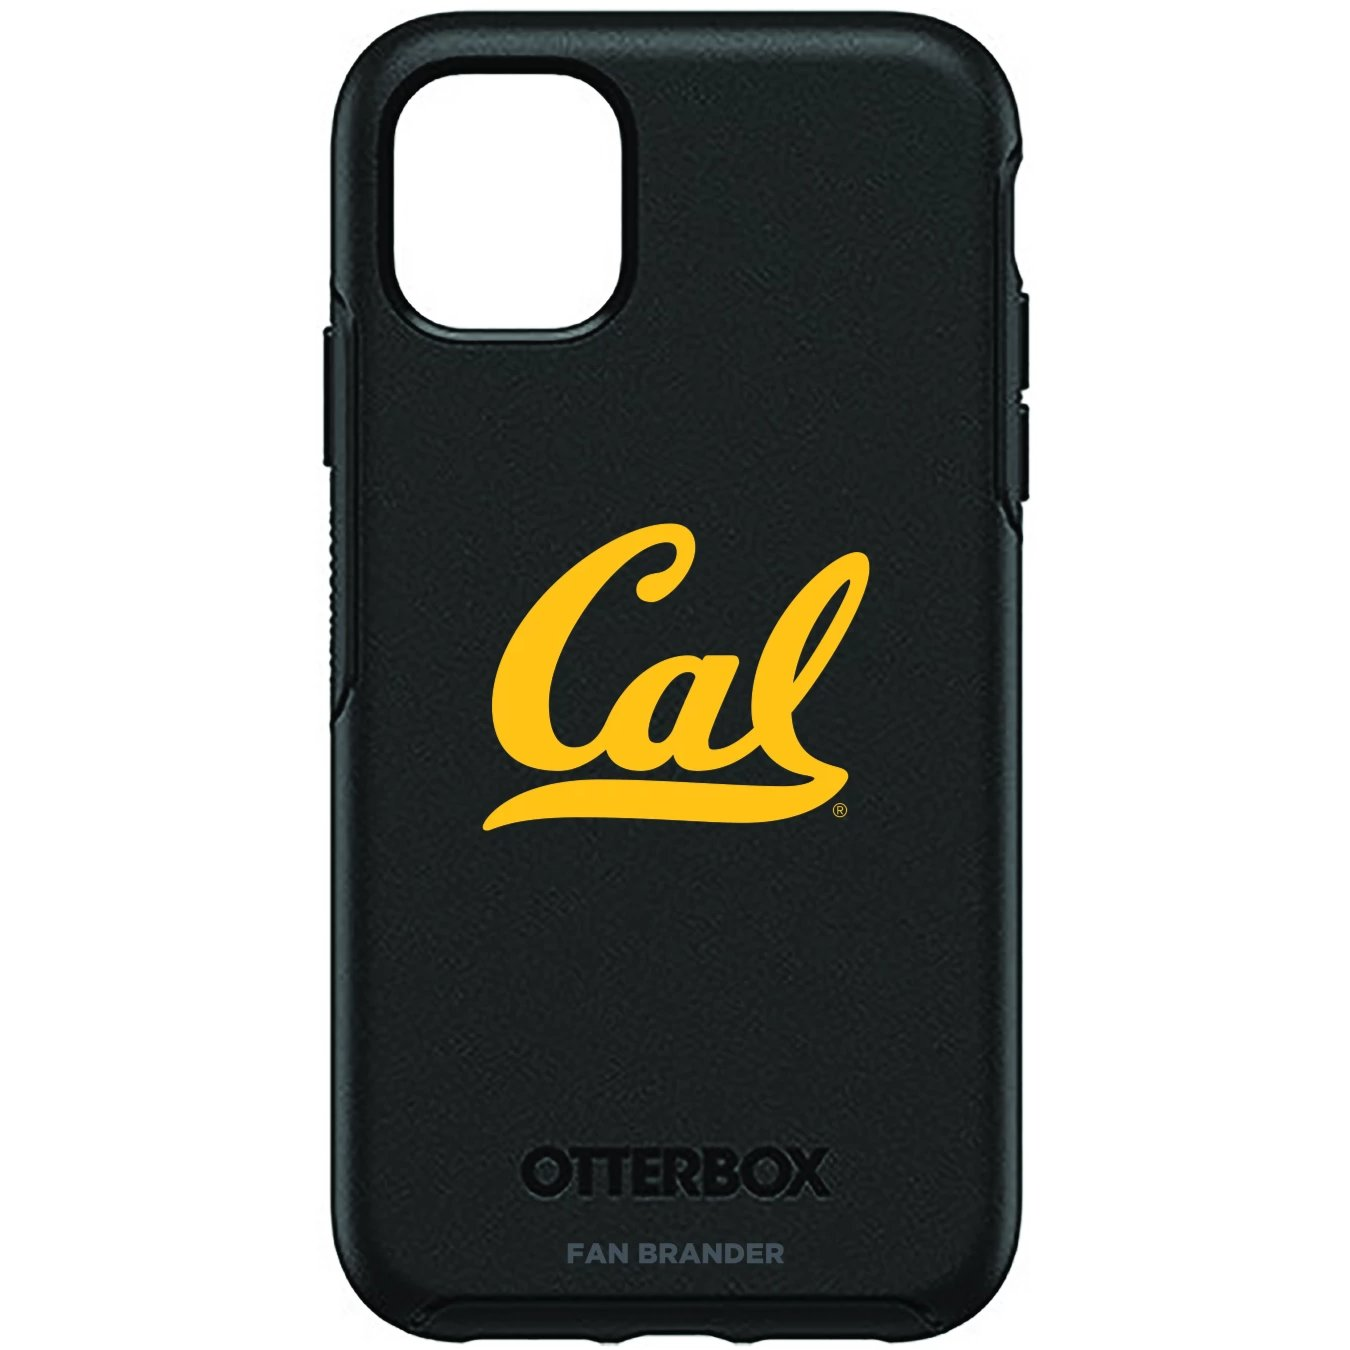 California Bears Otterbox Symmetry Case (for iPhone 11, Pro, Pro Max)